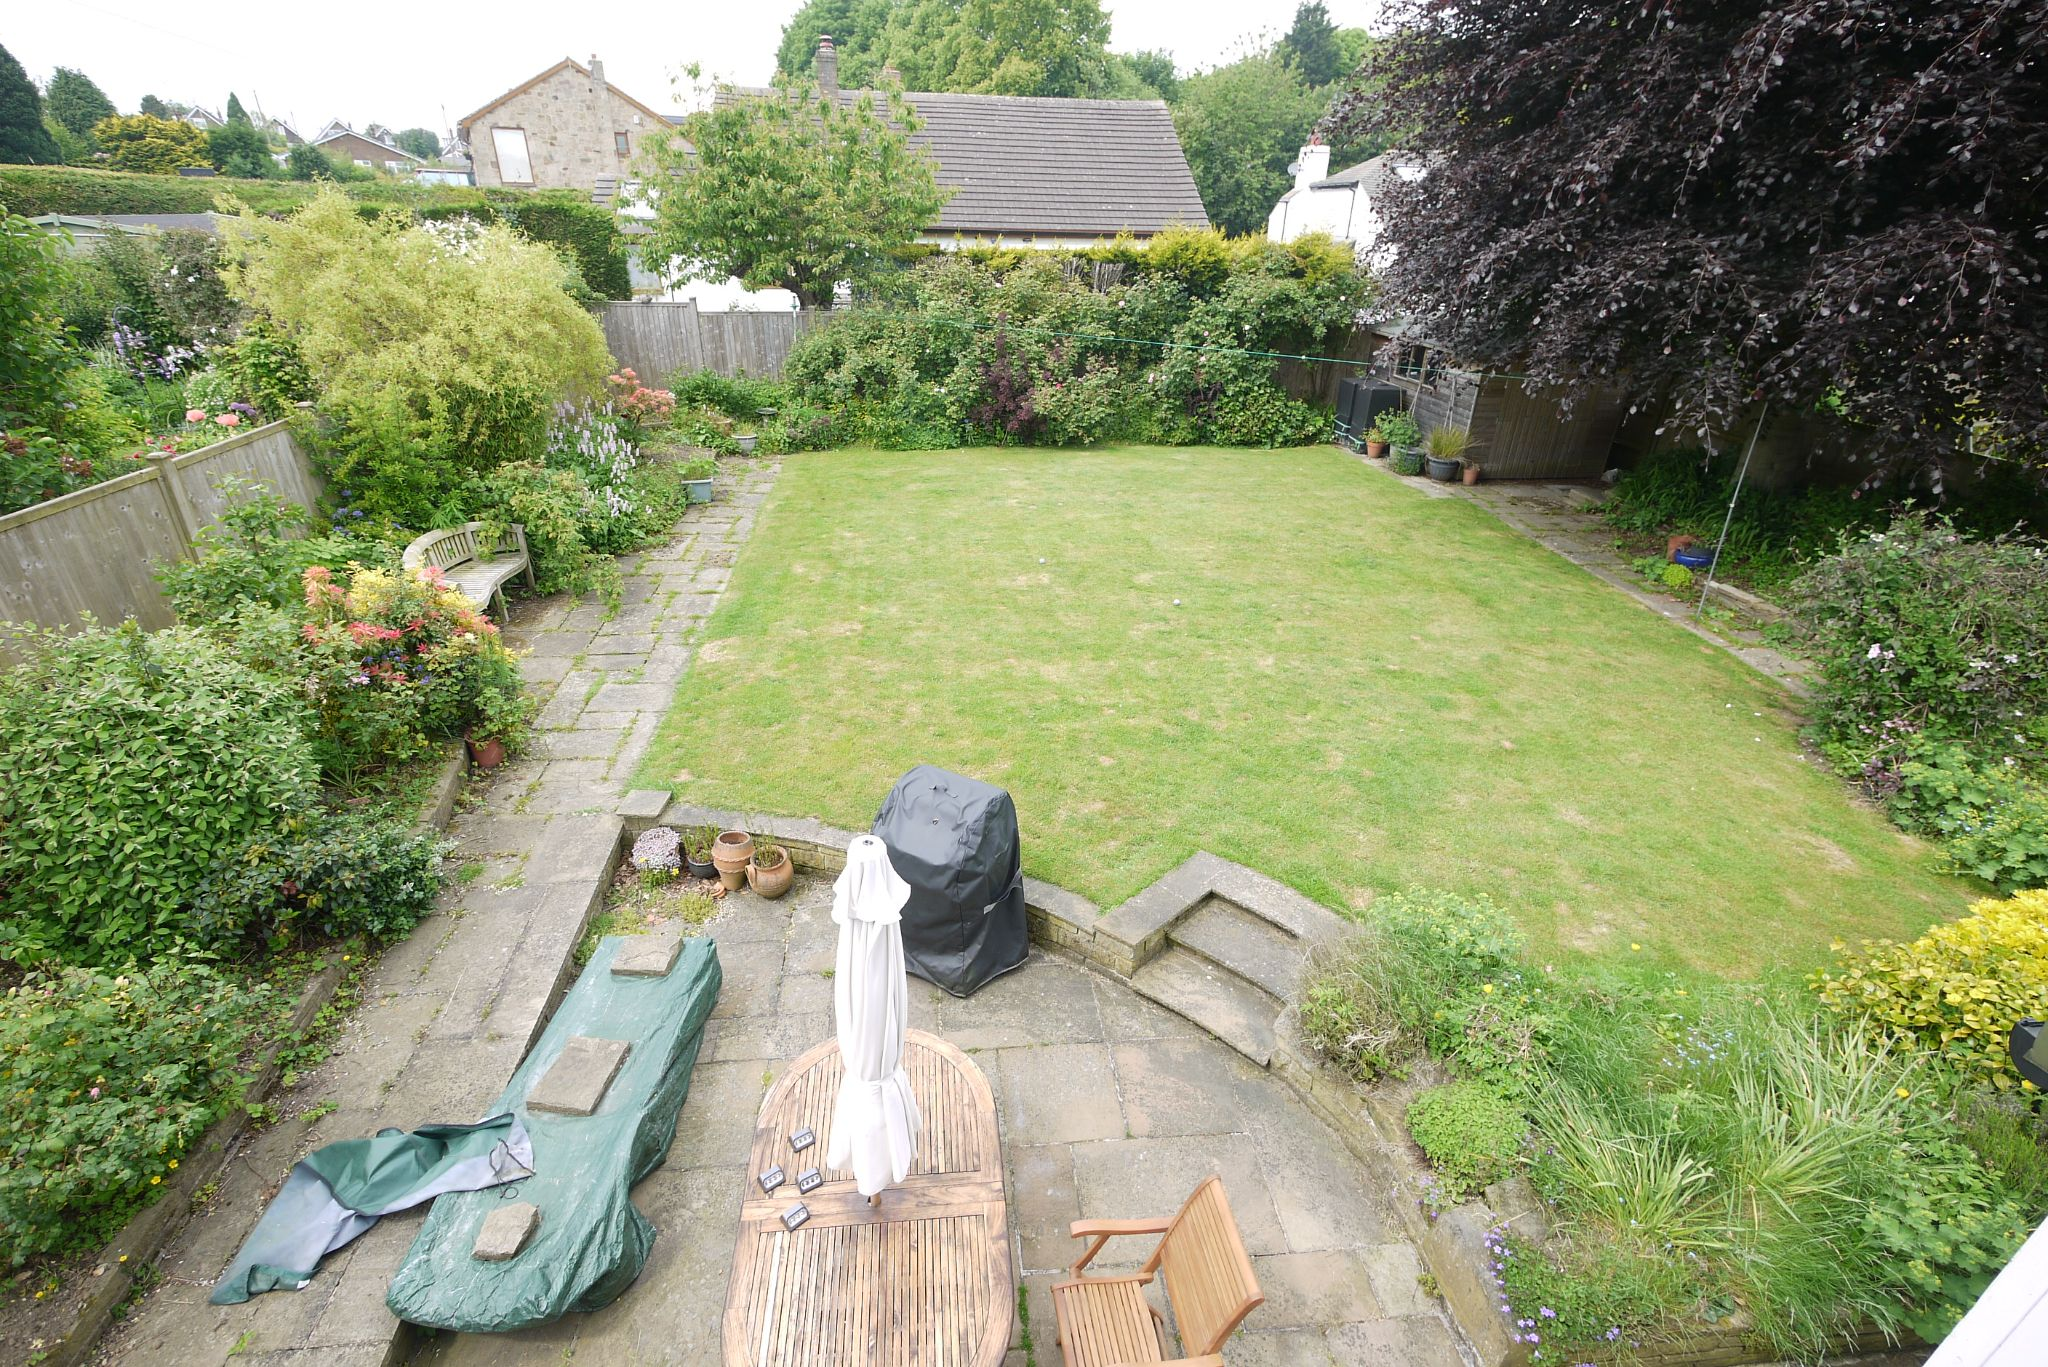 4 bedroom detached house SSTC in Brighouse - Photograph 9.